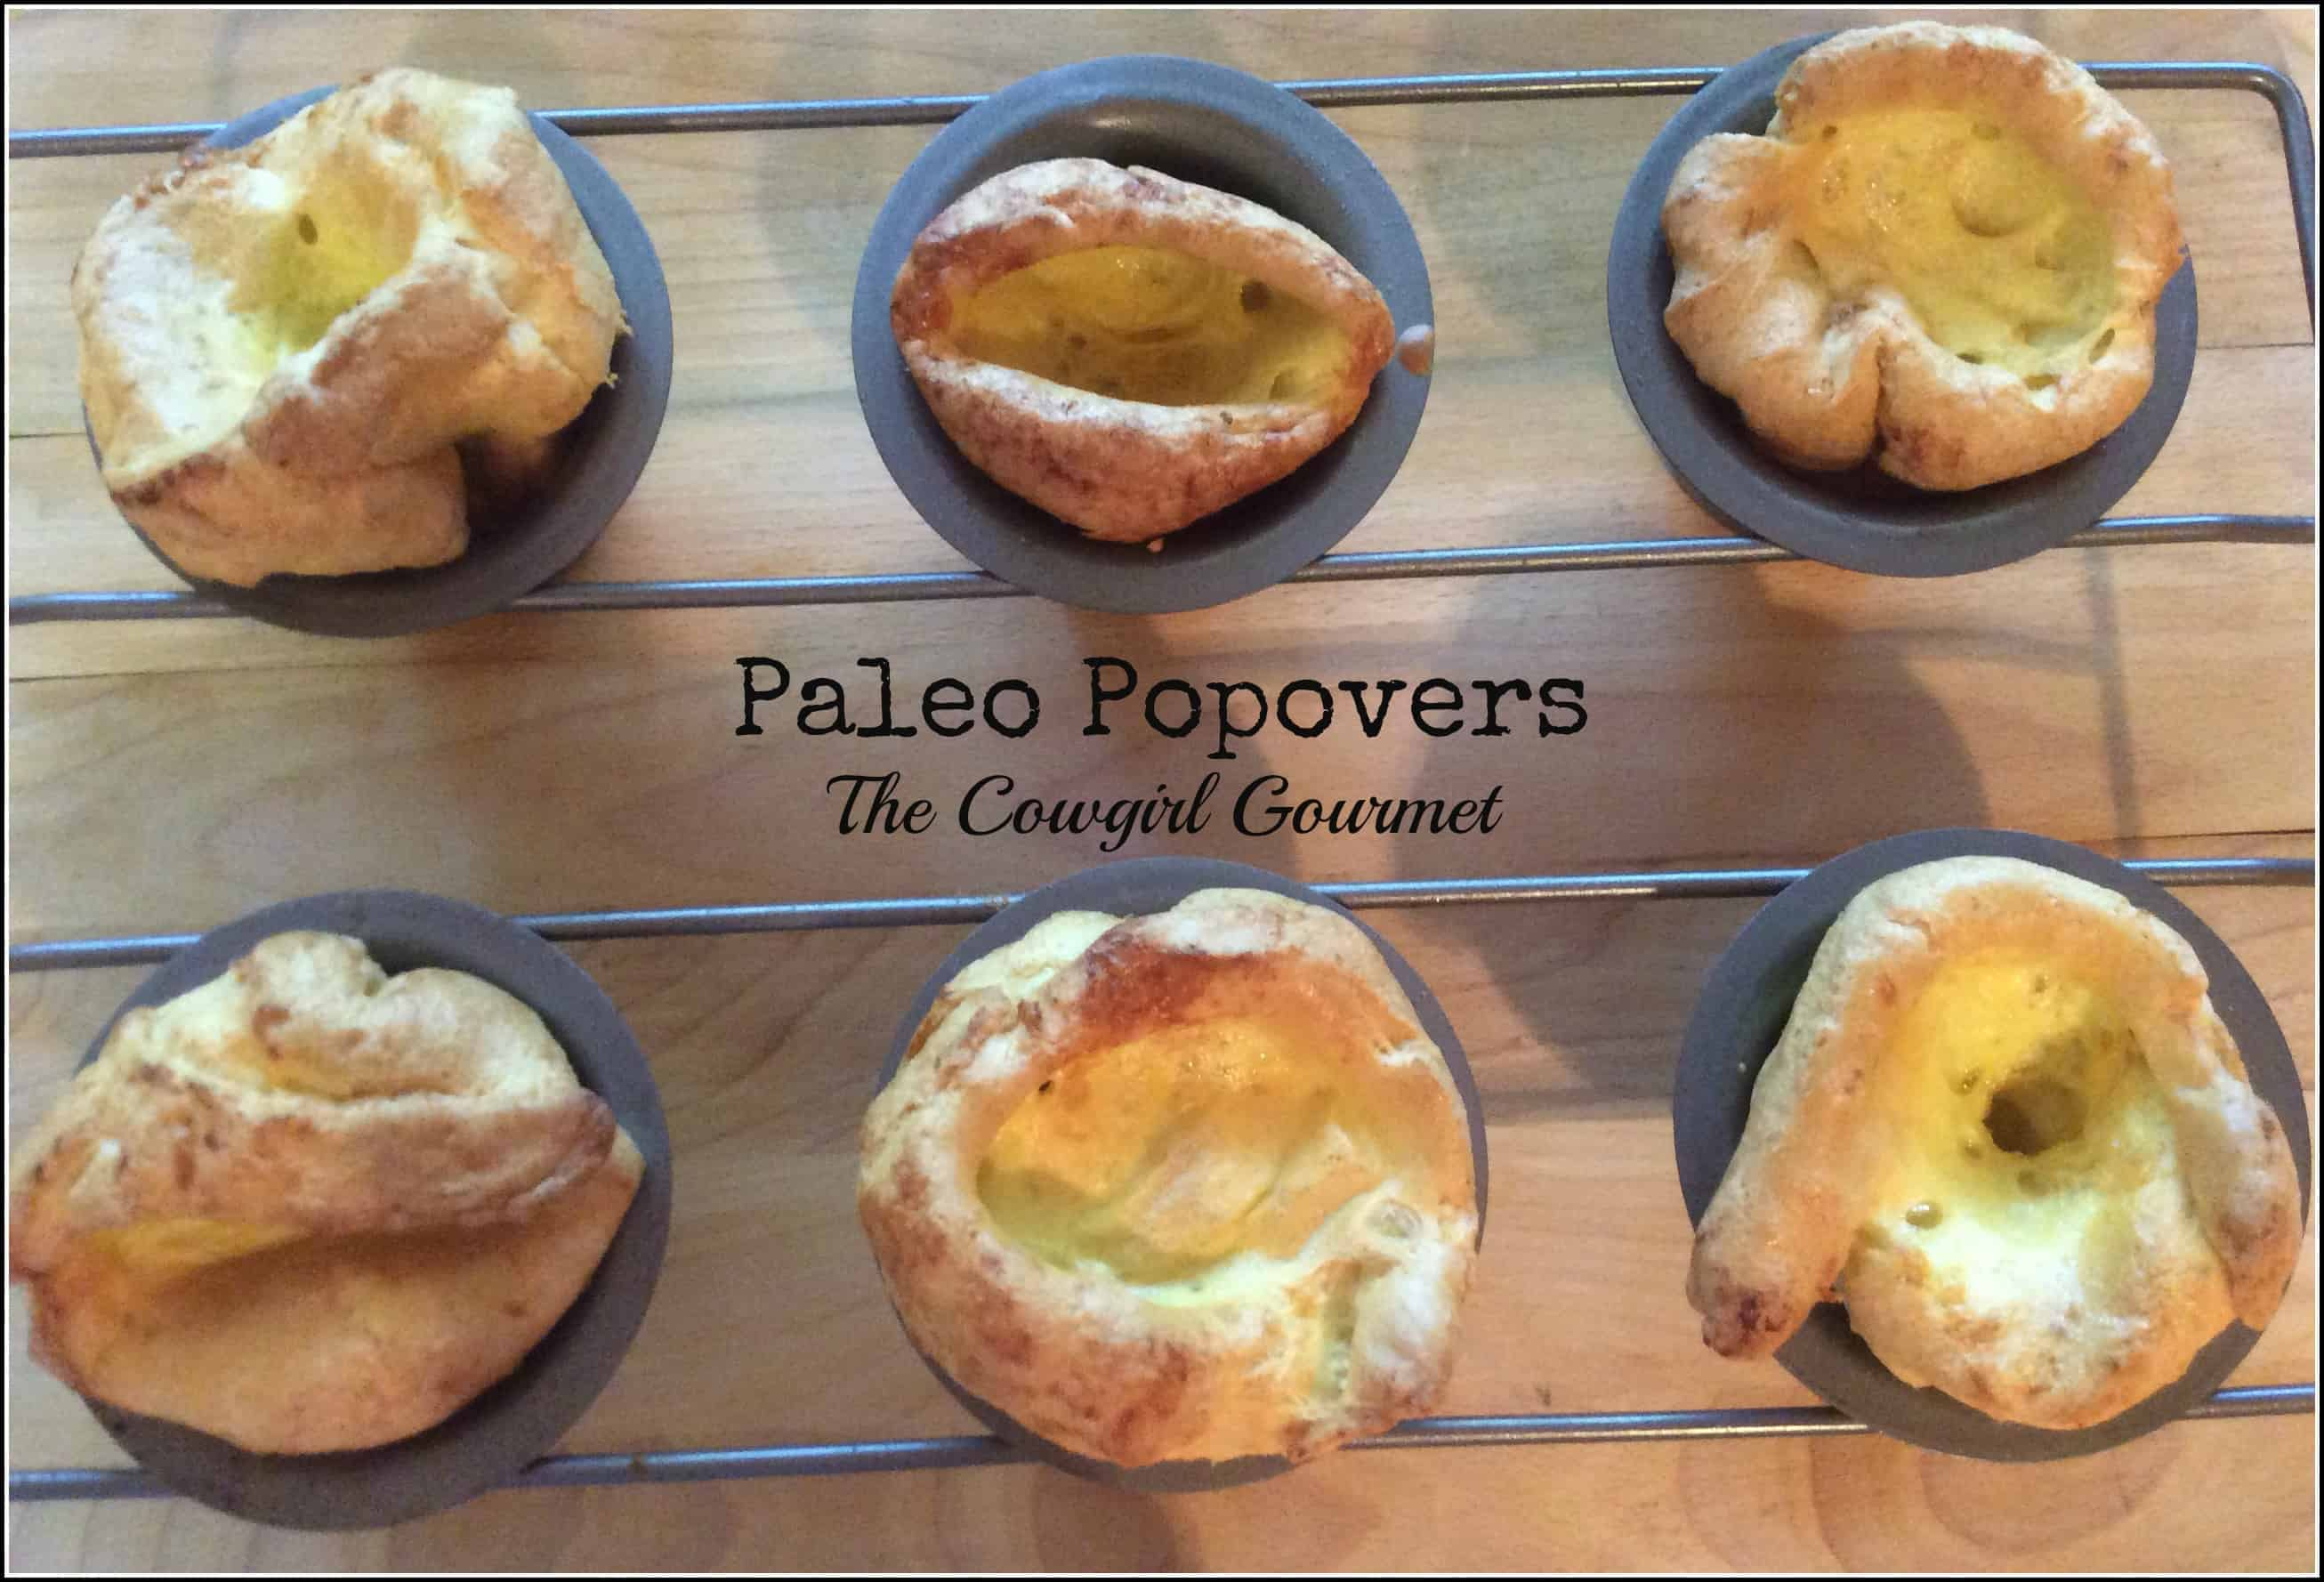 Pop Over For A Paleo Popover The Cowgirl Gourmet In Santa Fe